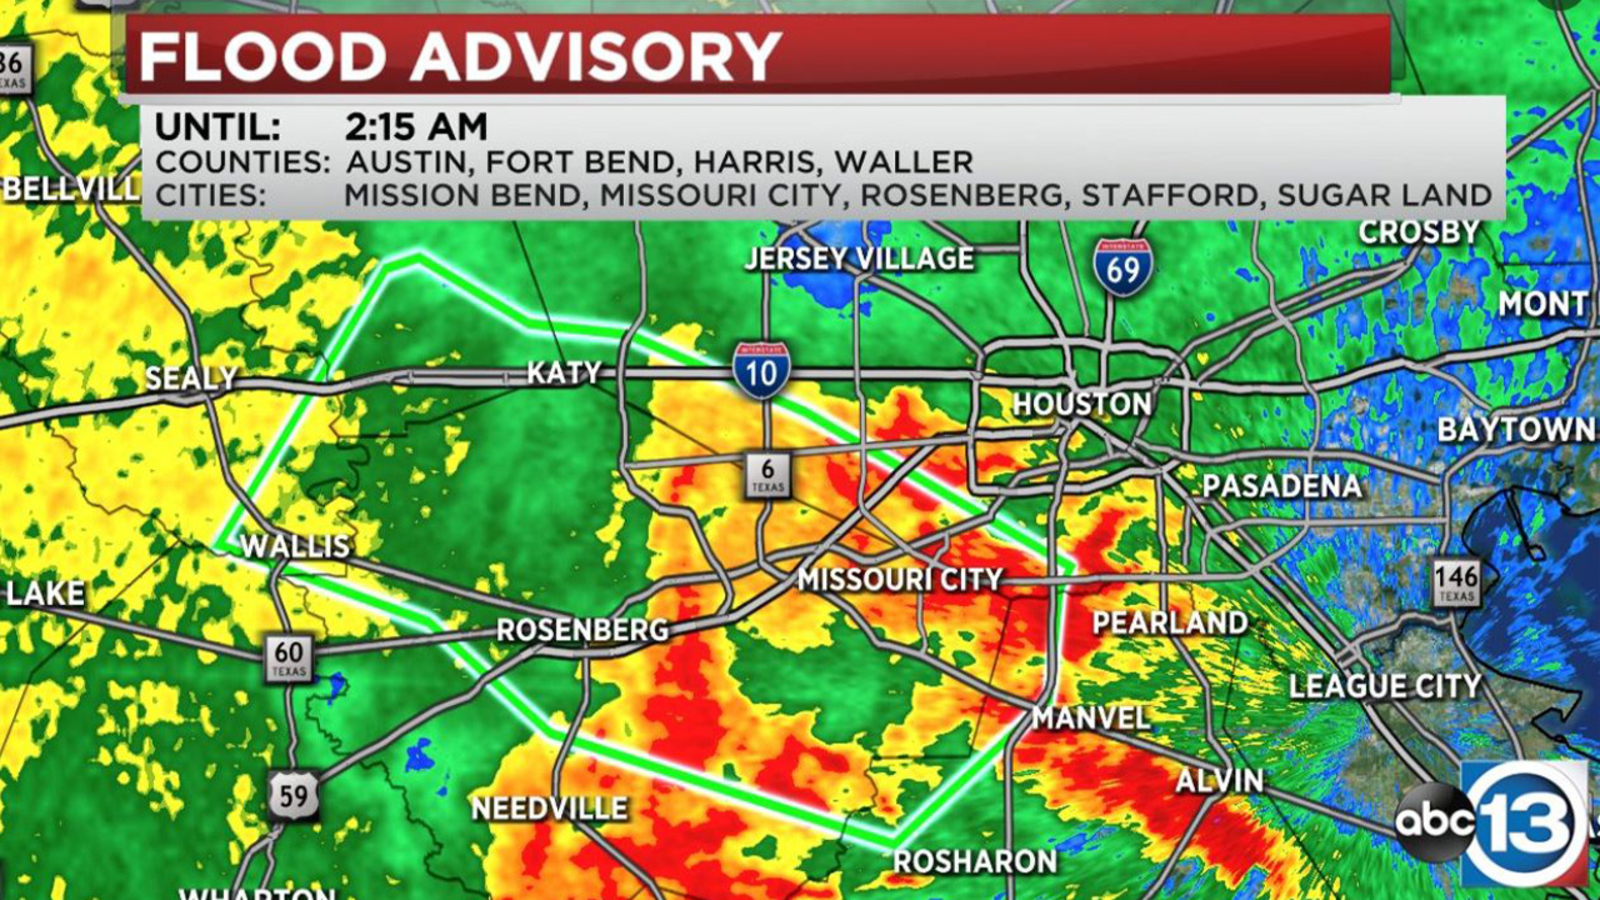 Flood Advisory in effect for Austin, Ft. Bend, Harris and Waller counties until 2:15 a.m.